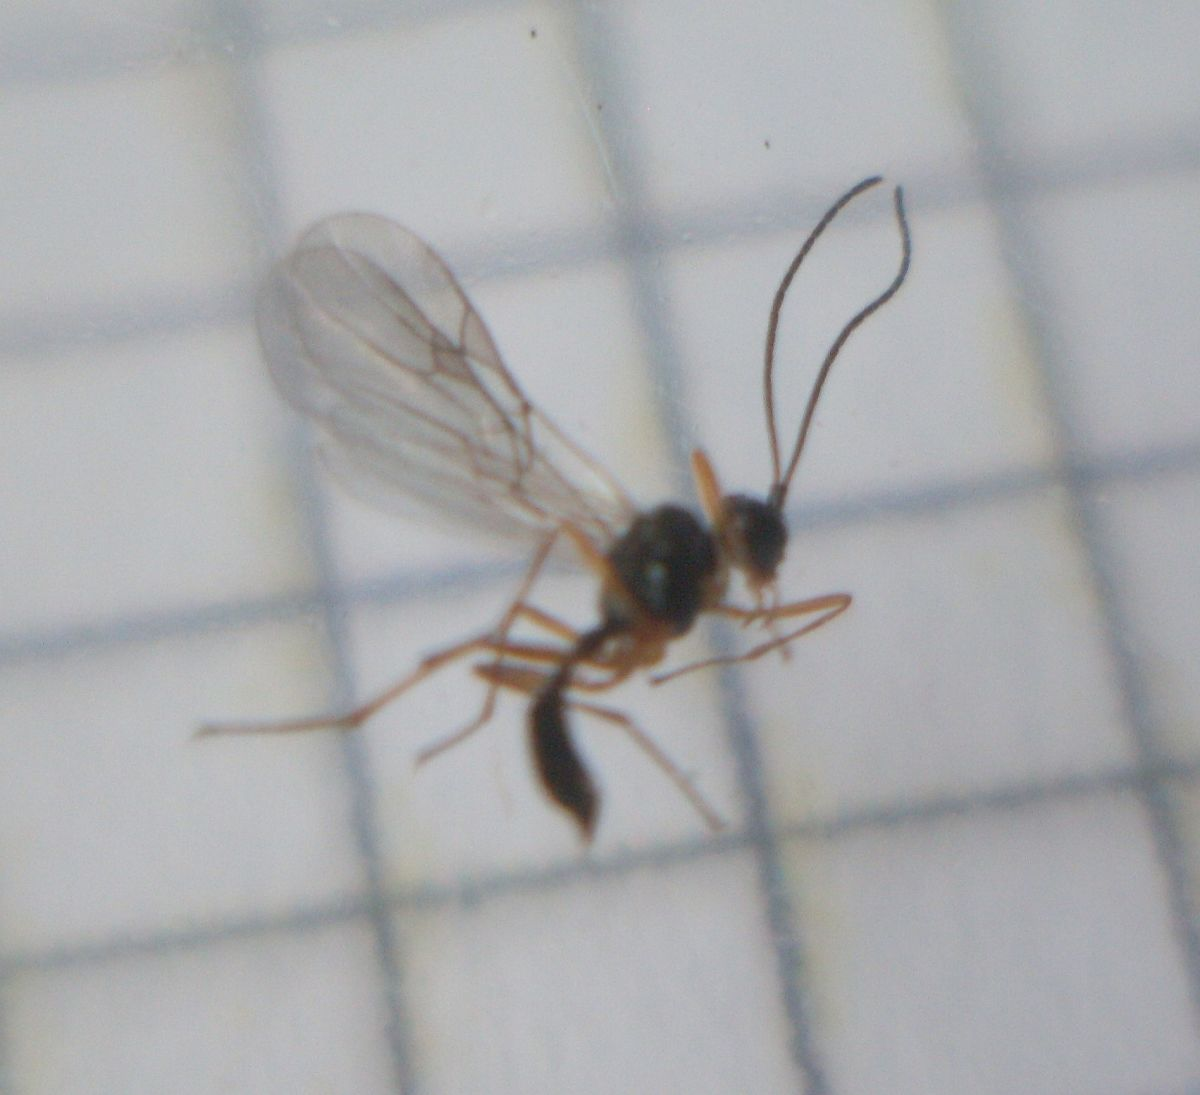 Parasitic wasp on 2mm graph paper